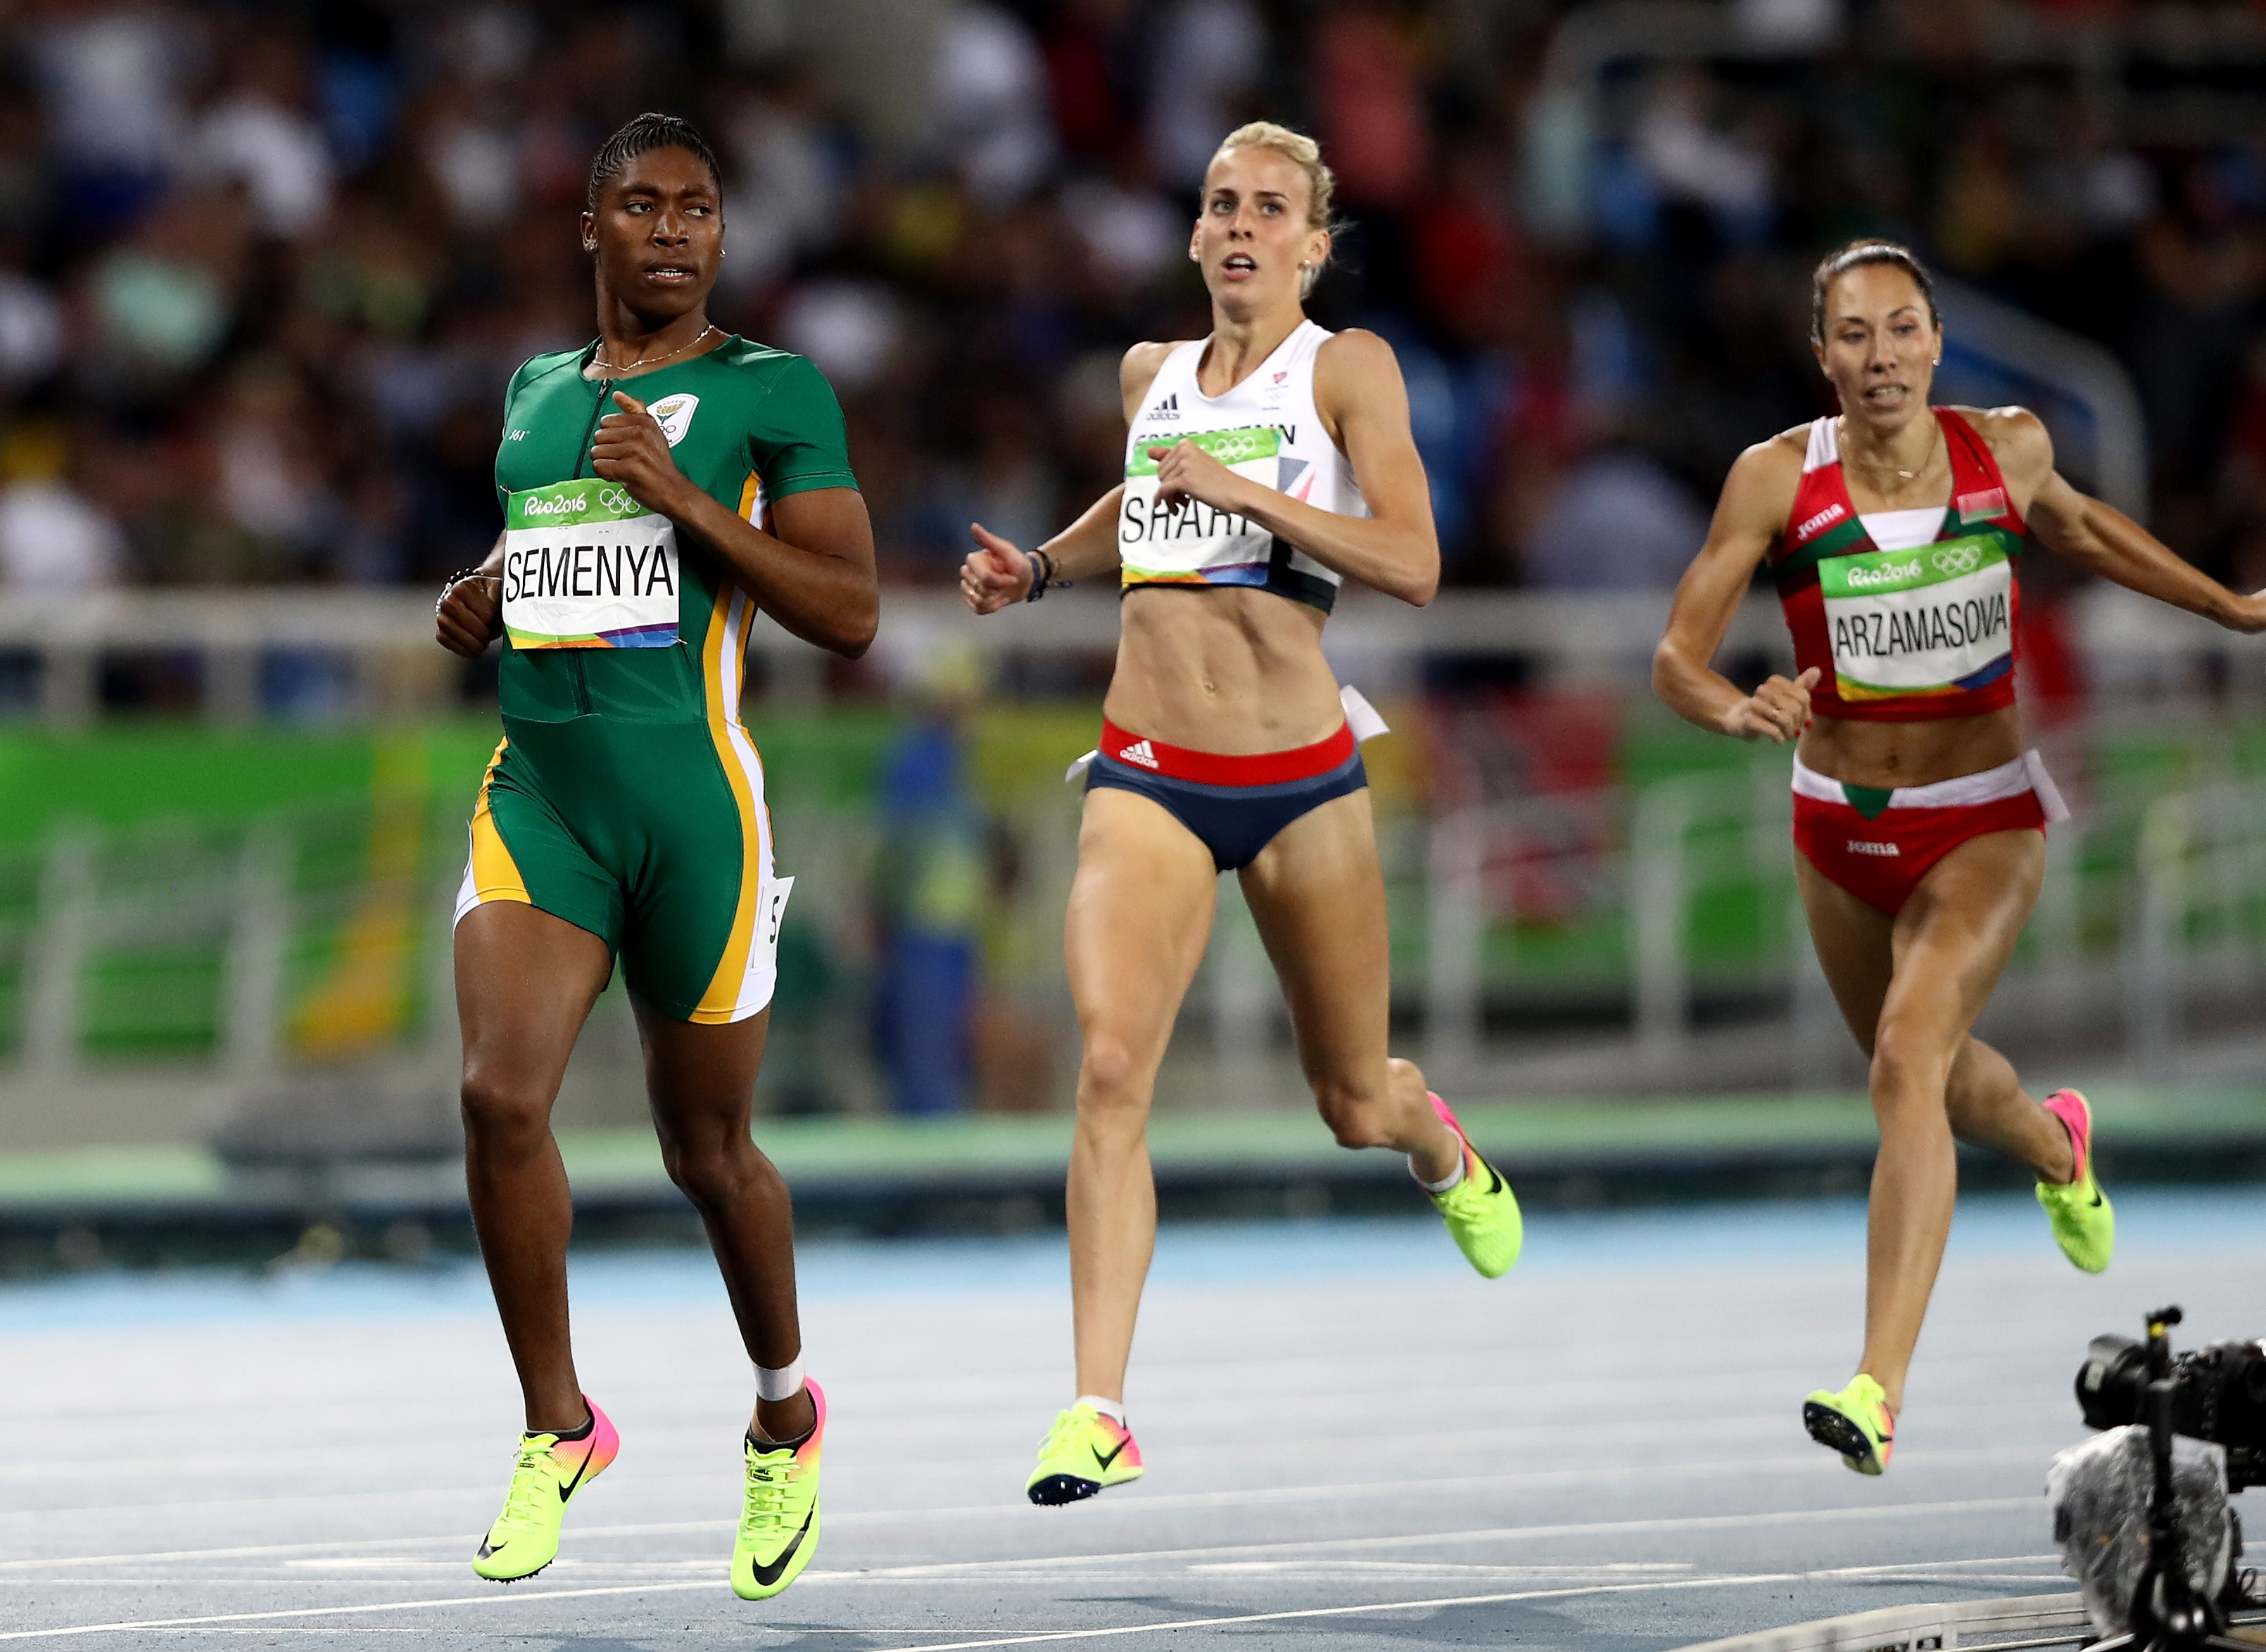 RIO DE JANEIRO, BRAZIL - AUGUST 18: Caster Semenya of South Africa and Lynsey Sharp of Great Britain compete in the Women's 800m Semifinals on Day 13 of the Rio 2016 Olympic Games at the Olympic Stadium on August 18, 2016 in Rio de Janeiro, Brazil. (Photo by Ezra Shaw/Getty Images)